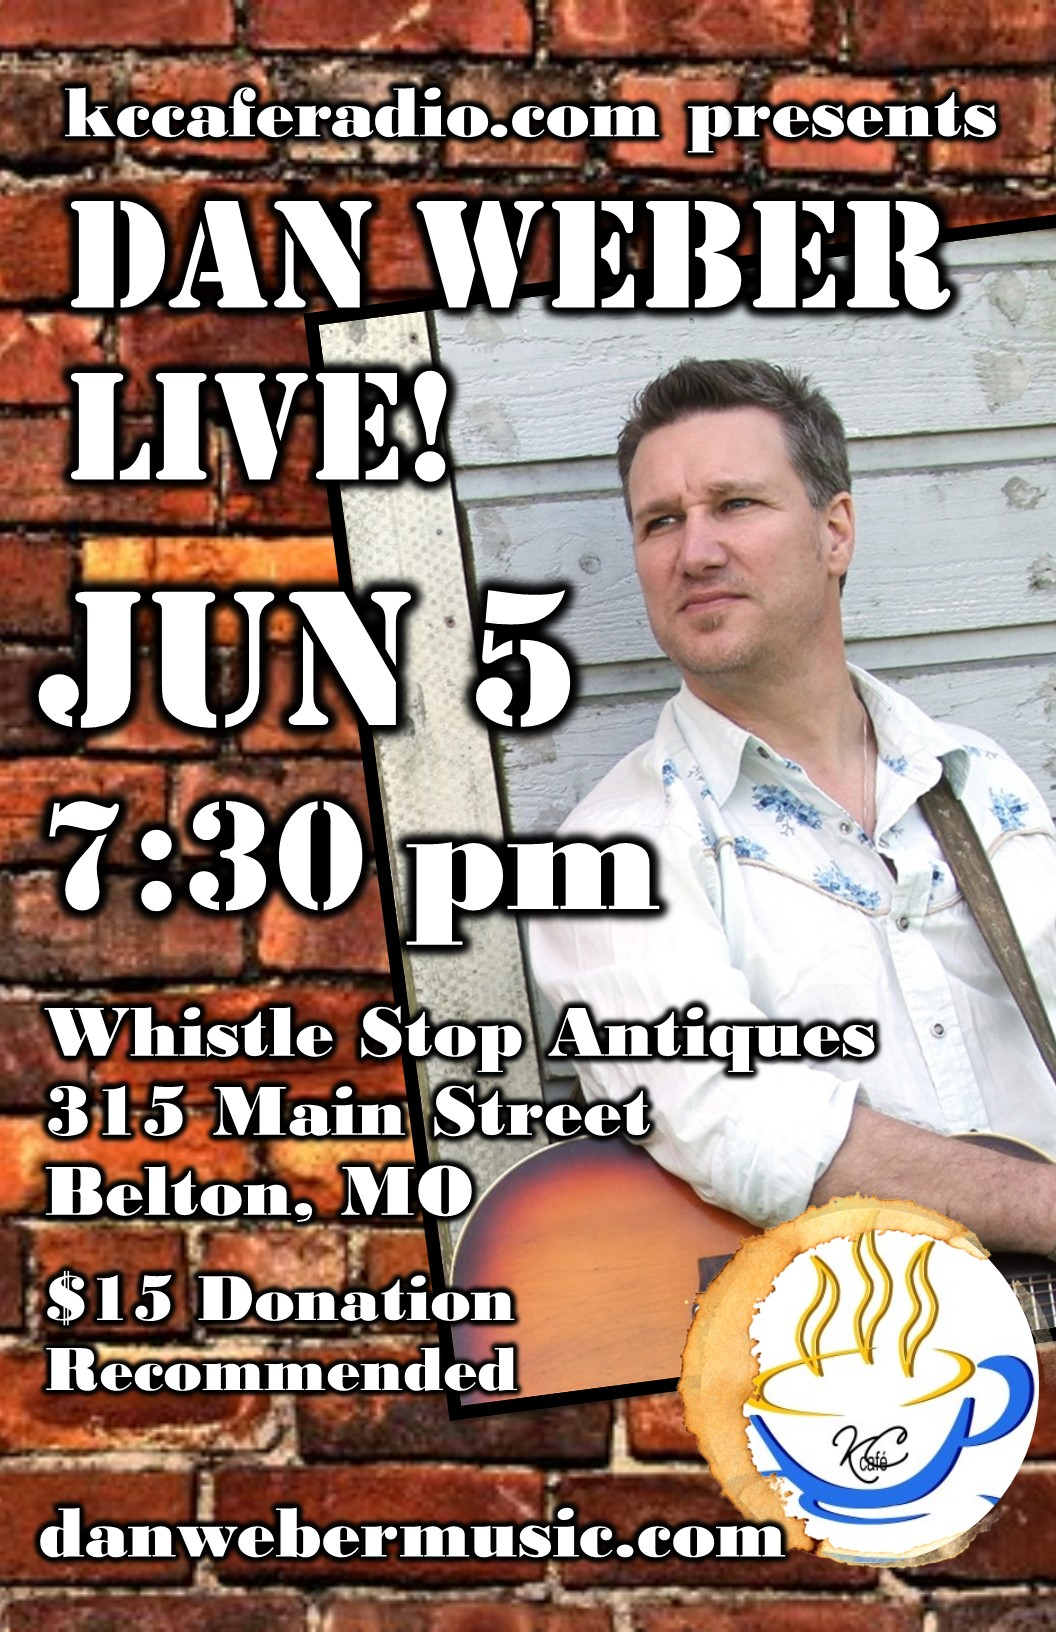 KC Cafe Radio Concert Series: Dan Weber Saturday, June 5, 2015